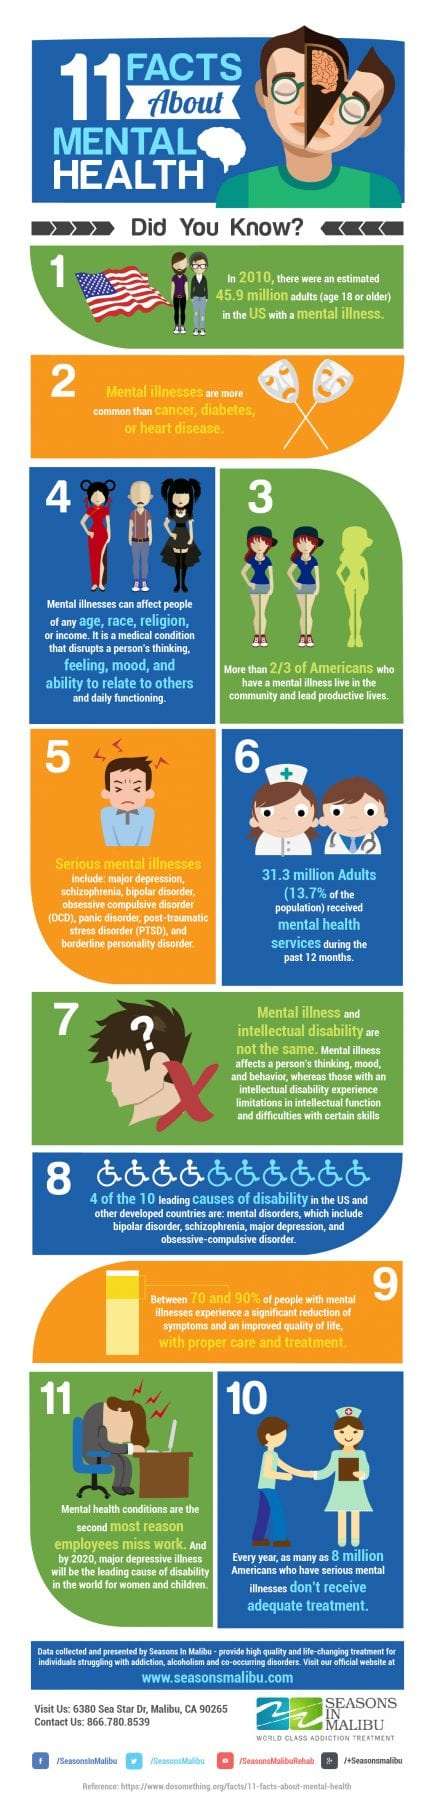 11 Facts About Mental Health